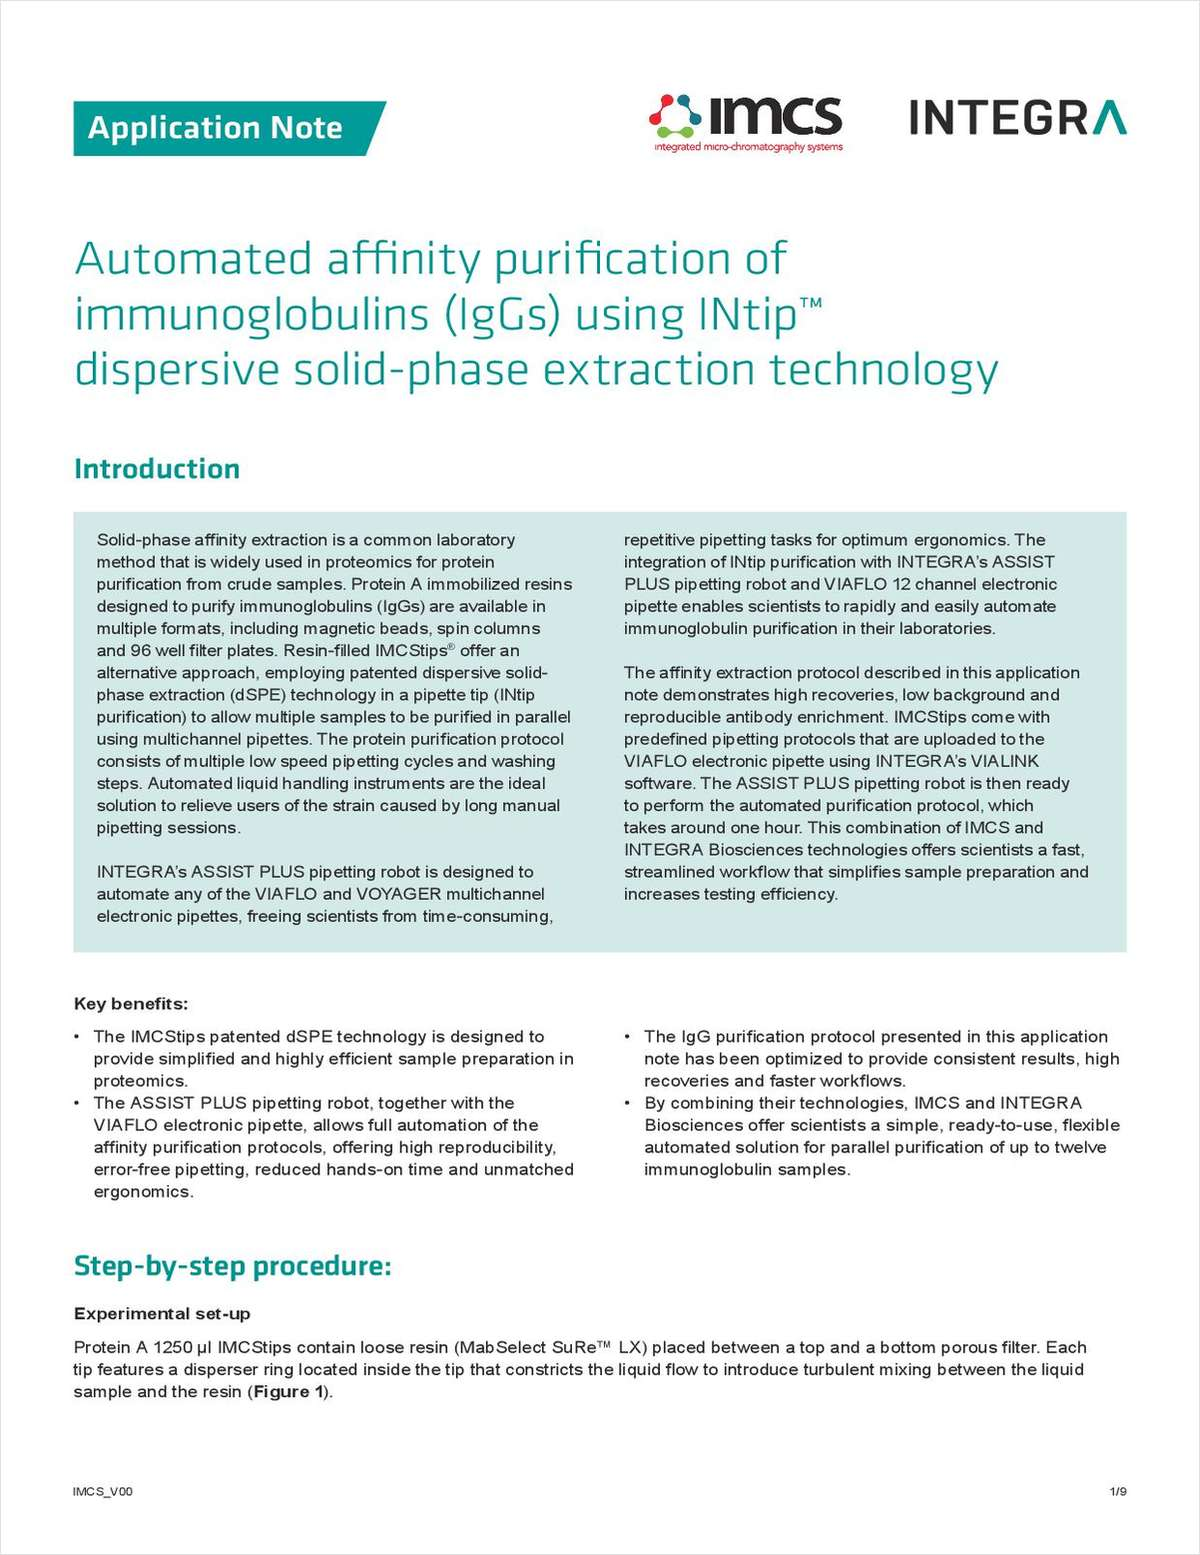 Automated Affinity Purification of Immunoglobulins (IgGs) Using INtip Dispersive Solid-Phase Extraction Technology